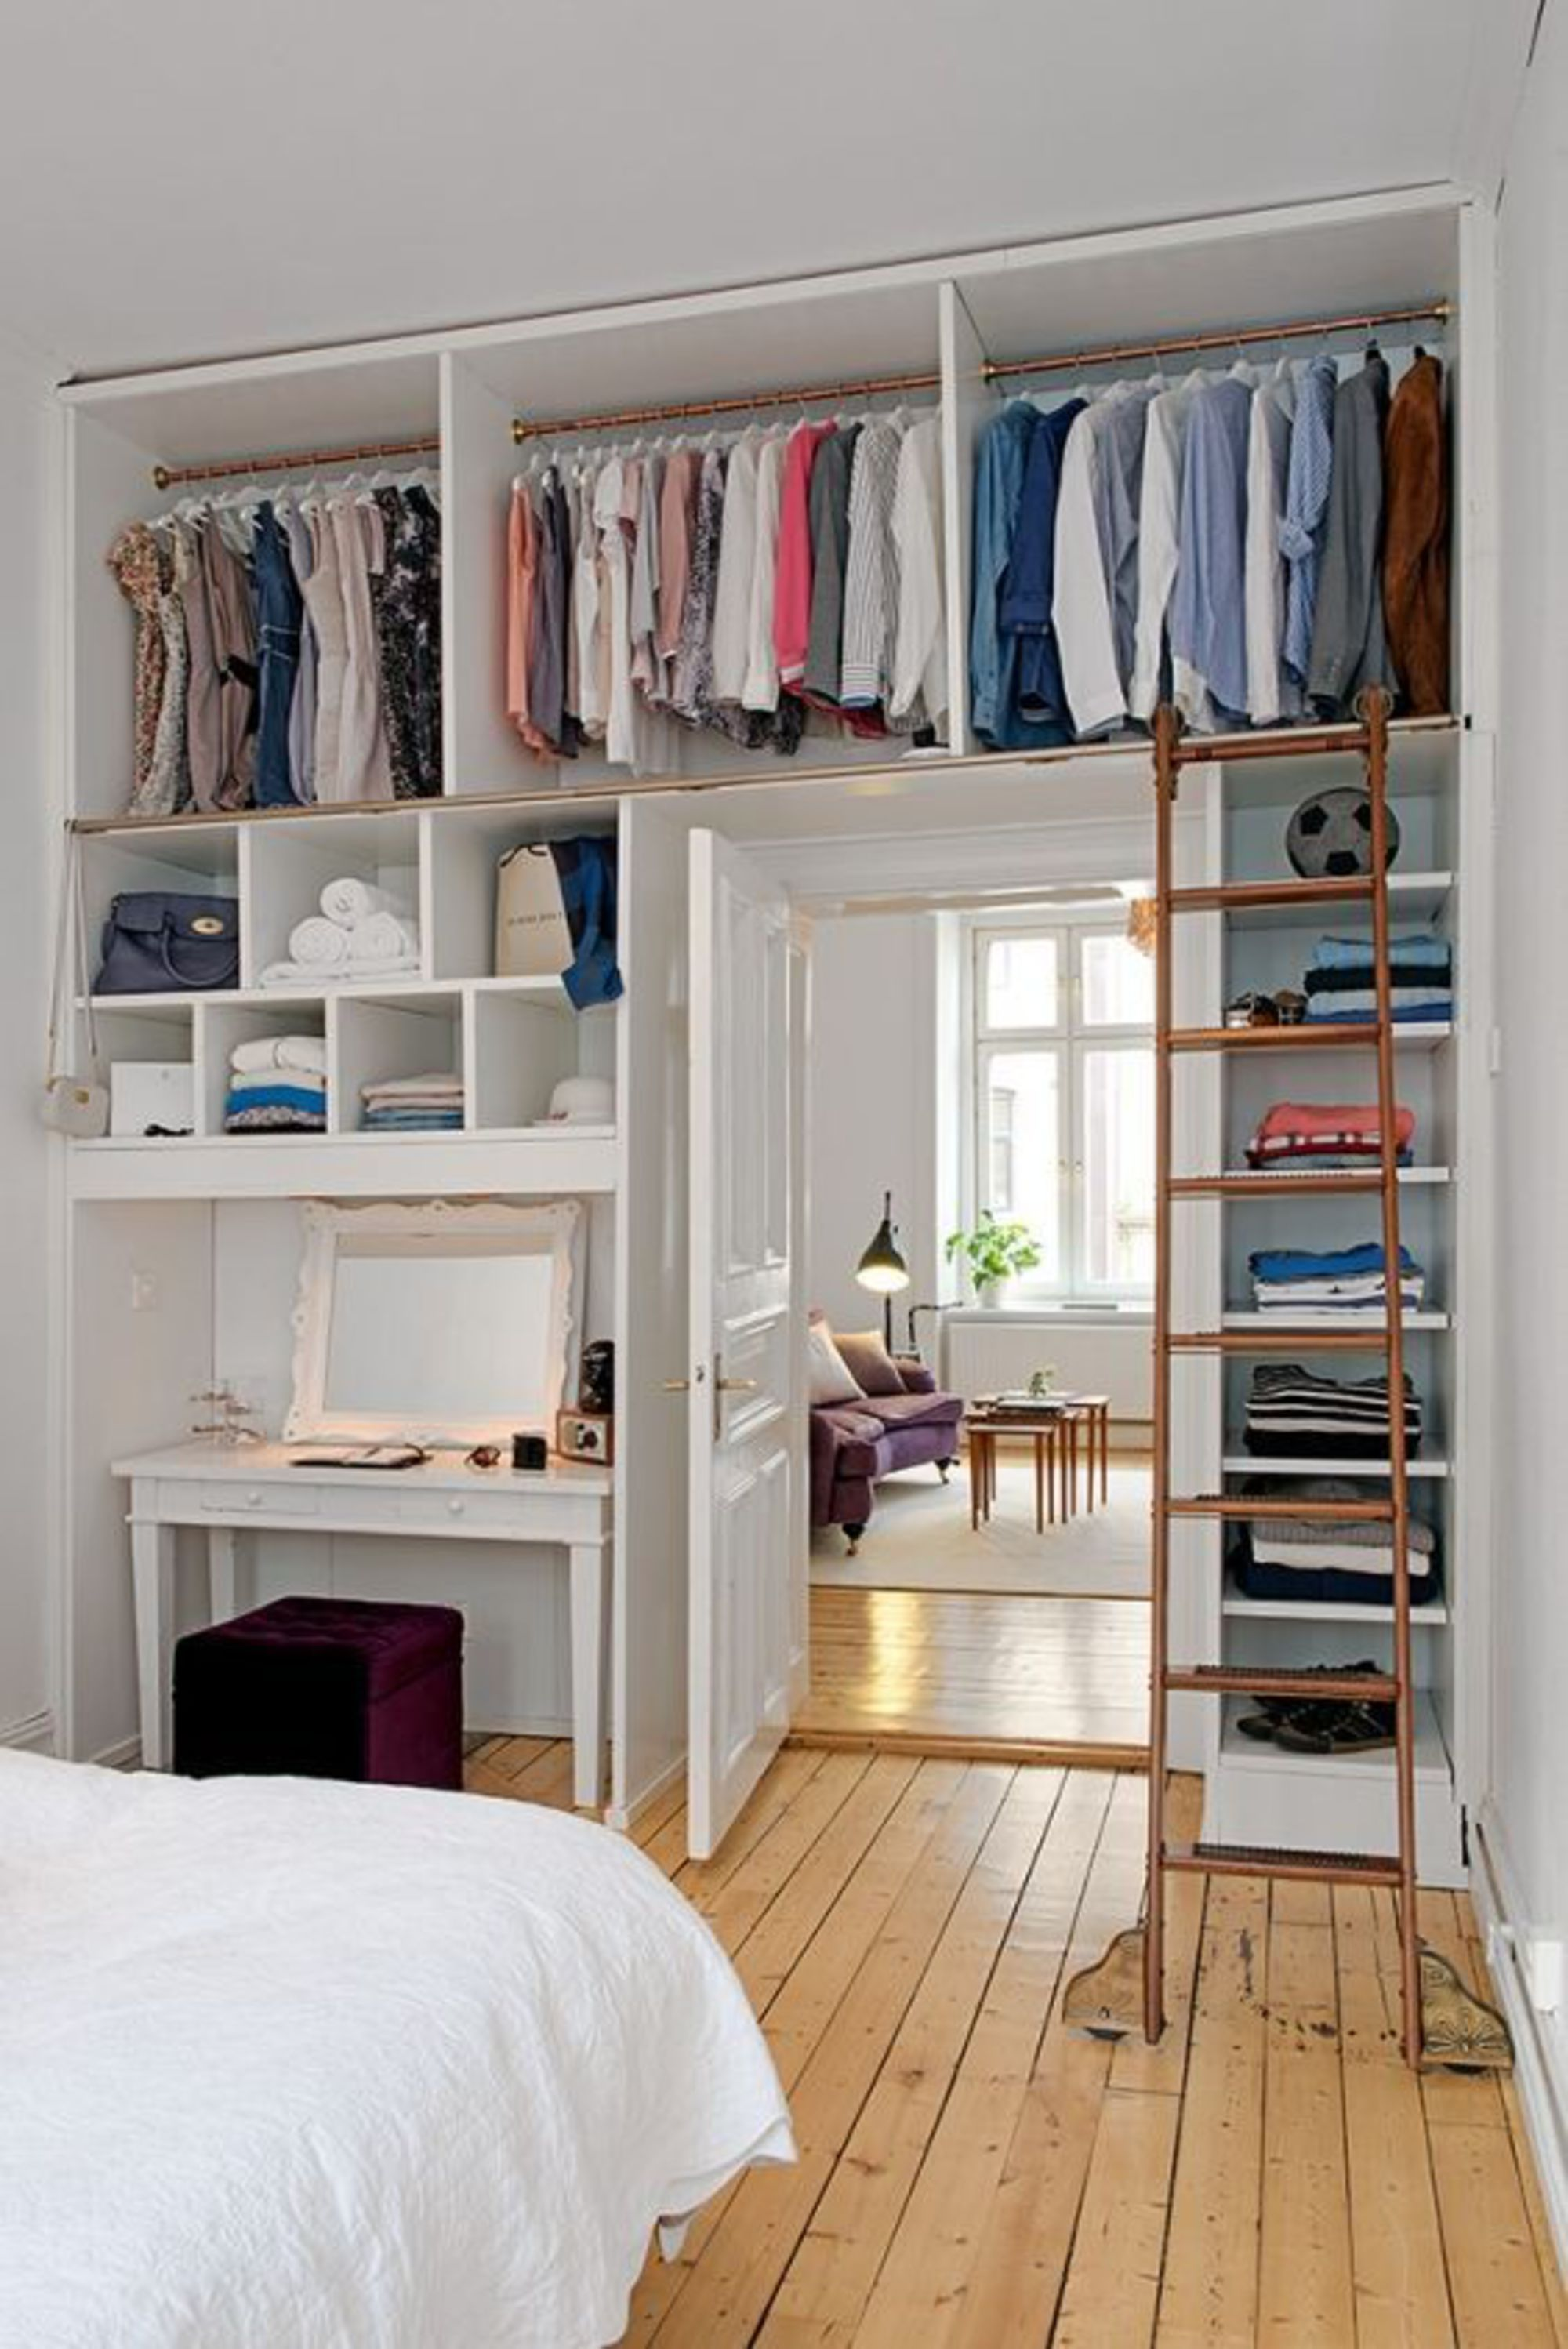 Space Saving Wardrobe Ideas I Like This As A Space Saver And Even Though I M Sure It Would Be